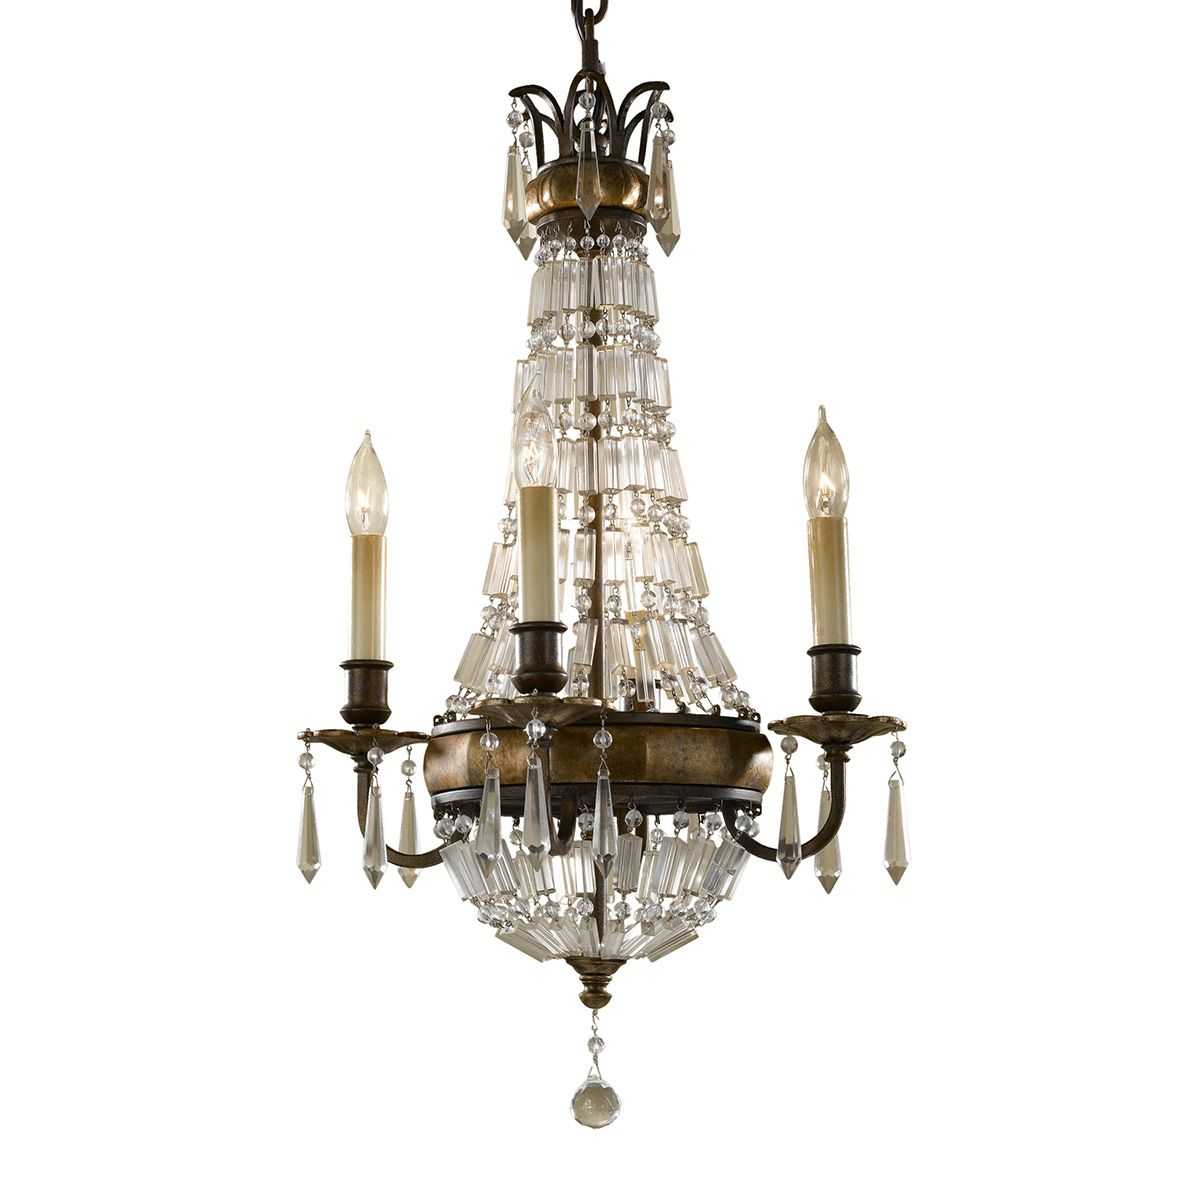 Bellini 4 Light Chandelier In A Bronze Finish With Antique